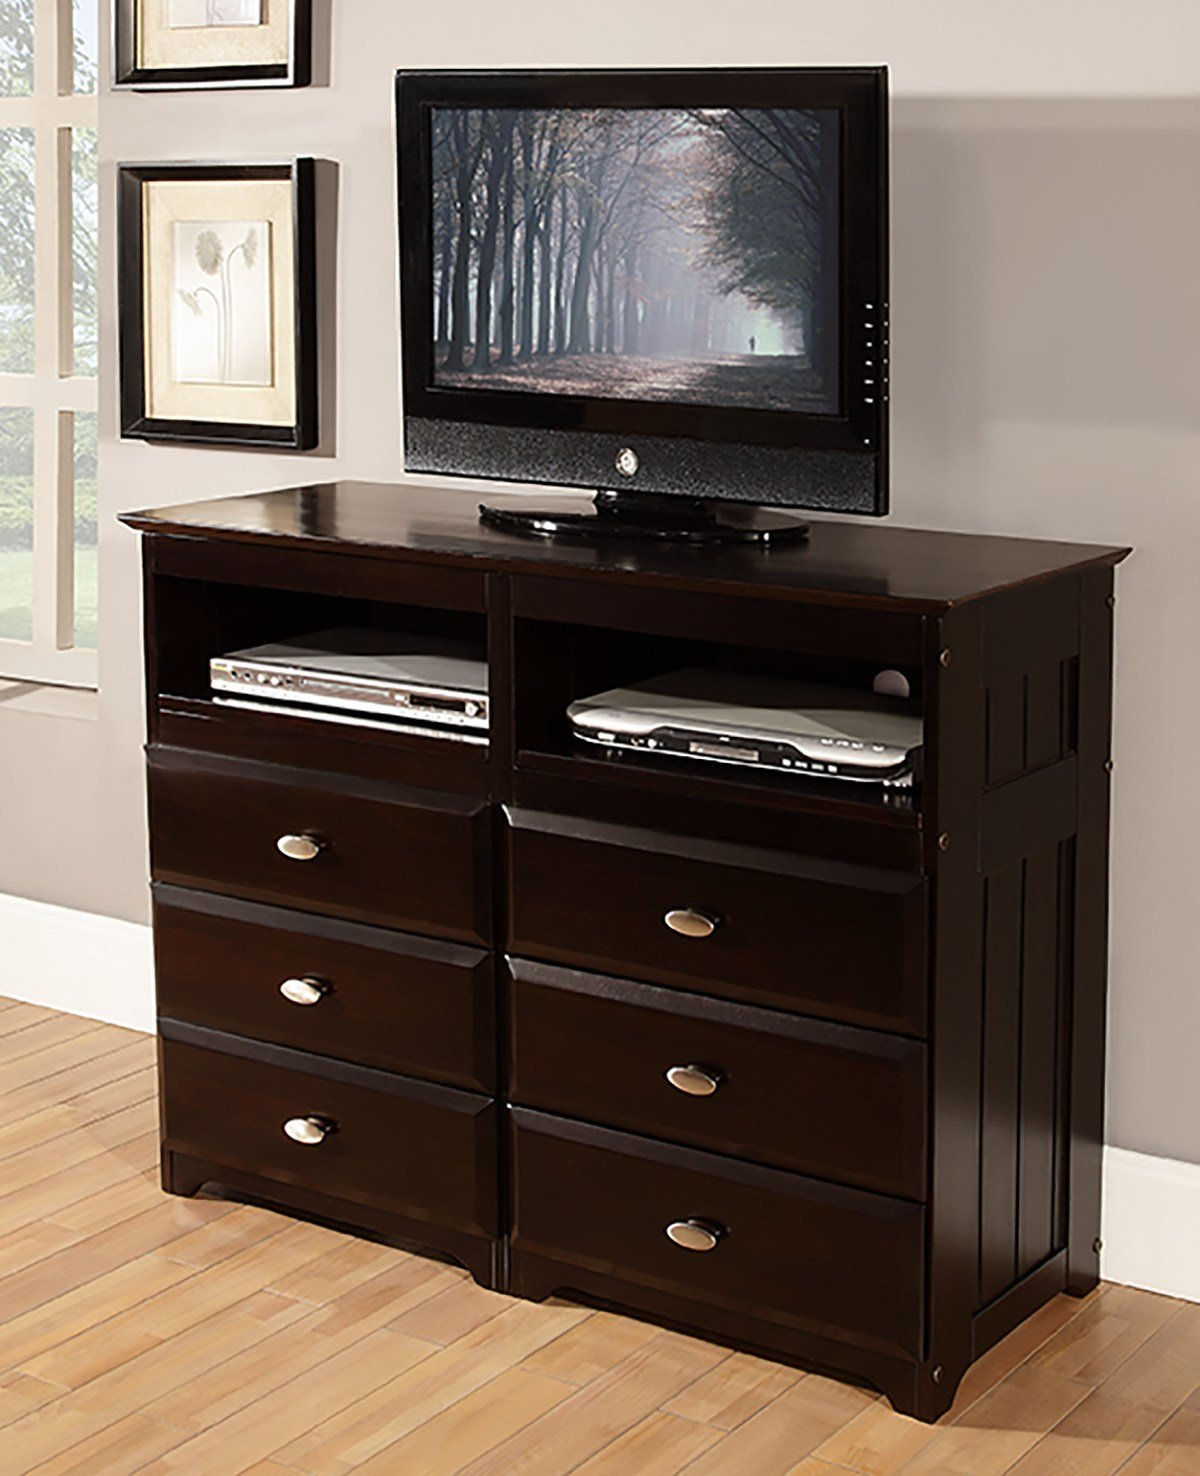 Best Discovery World Furniture Espresso Media Chest – Kfs Stores With Pictures